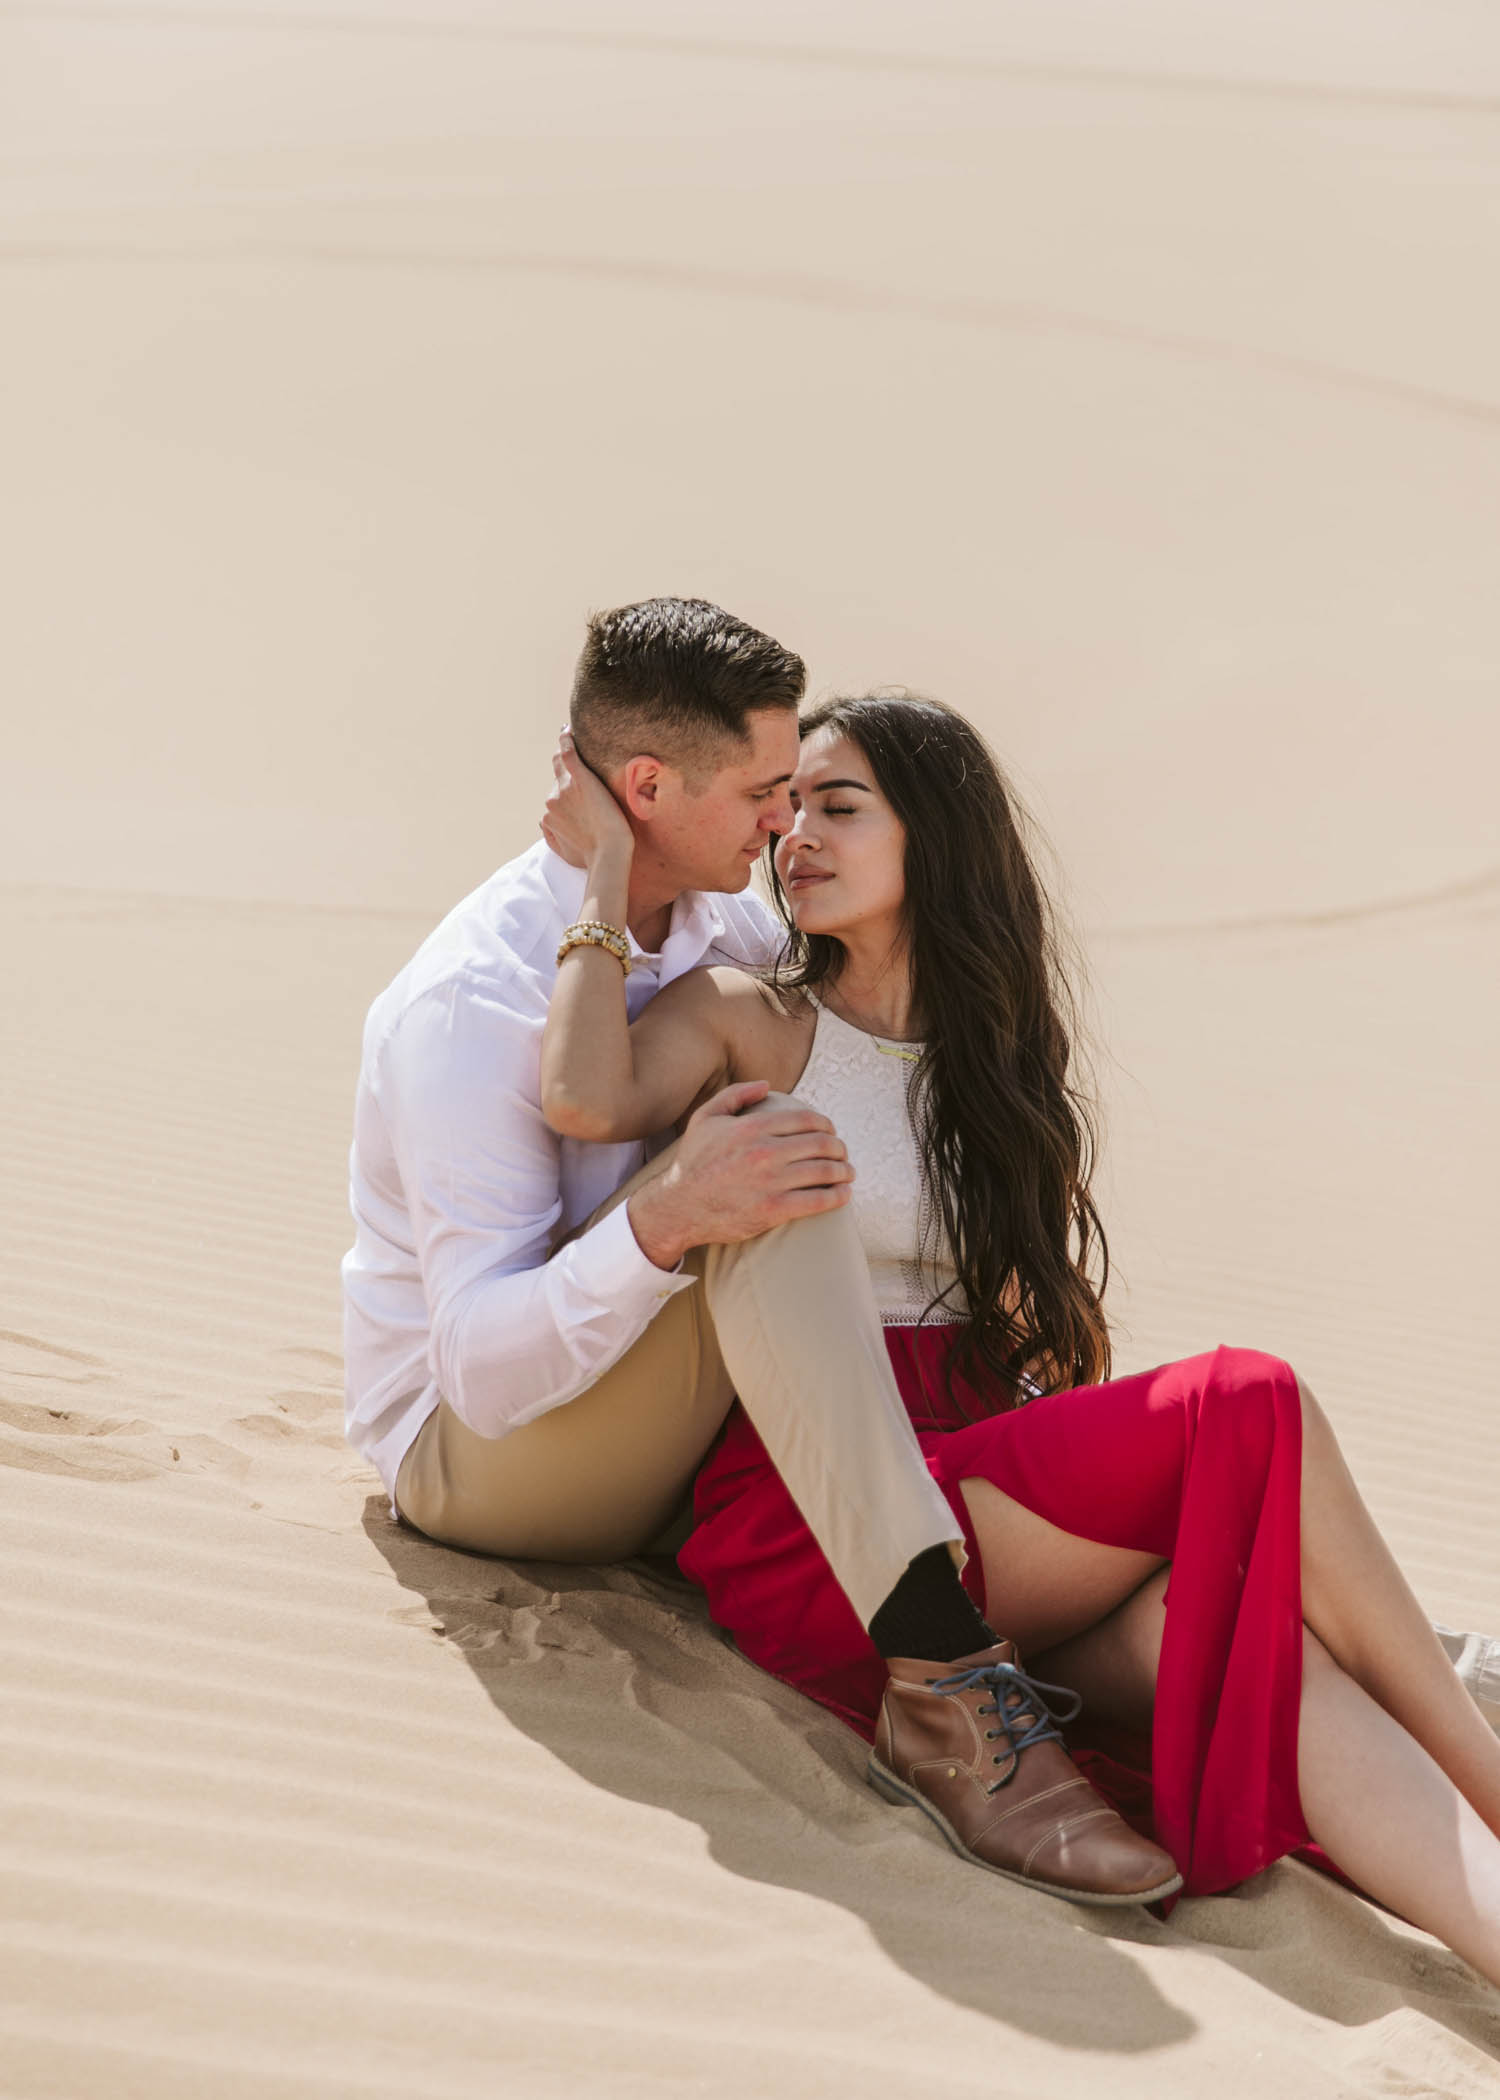 glamis_sand_dunes_couples_session_015.jpg